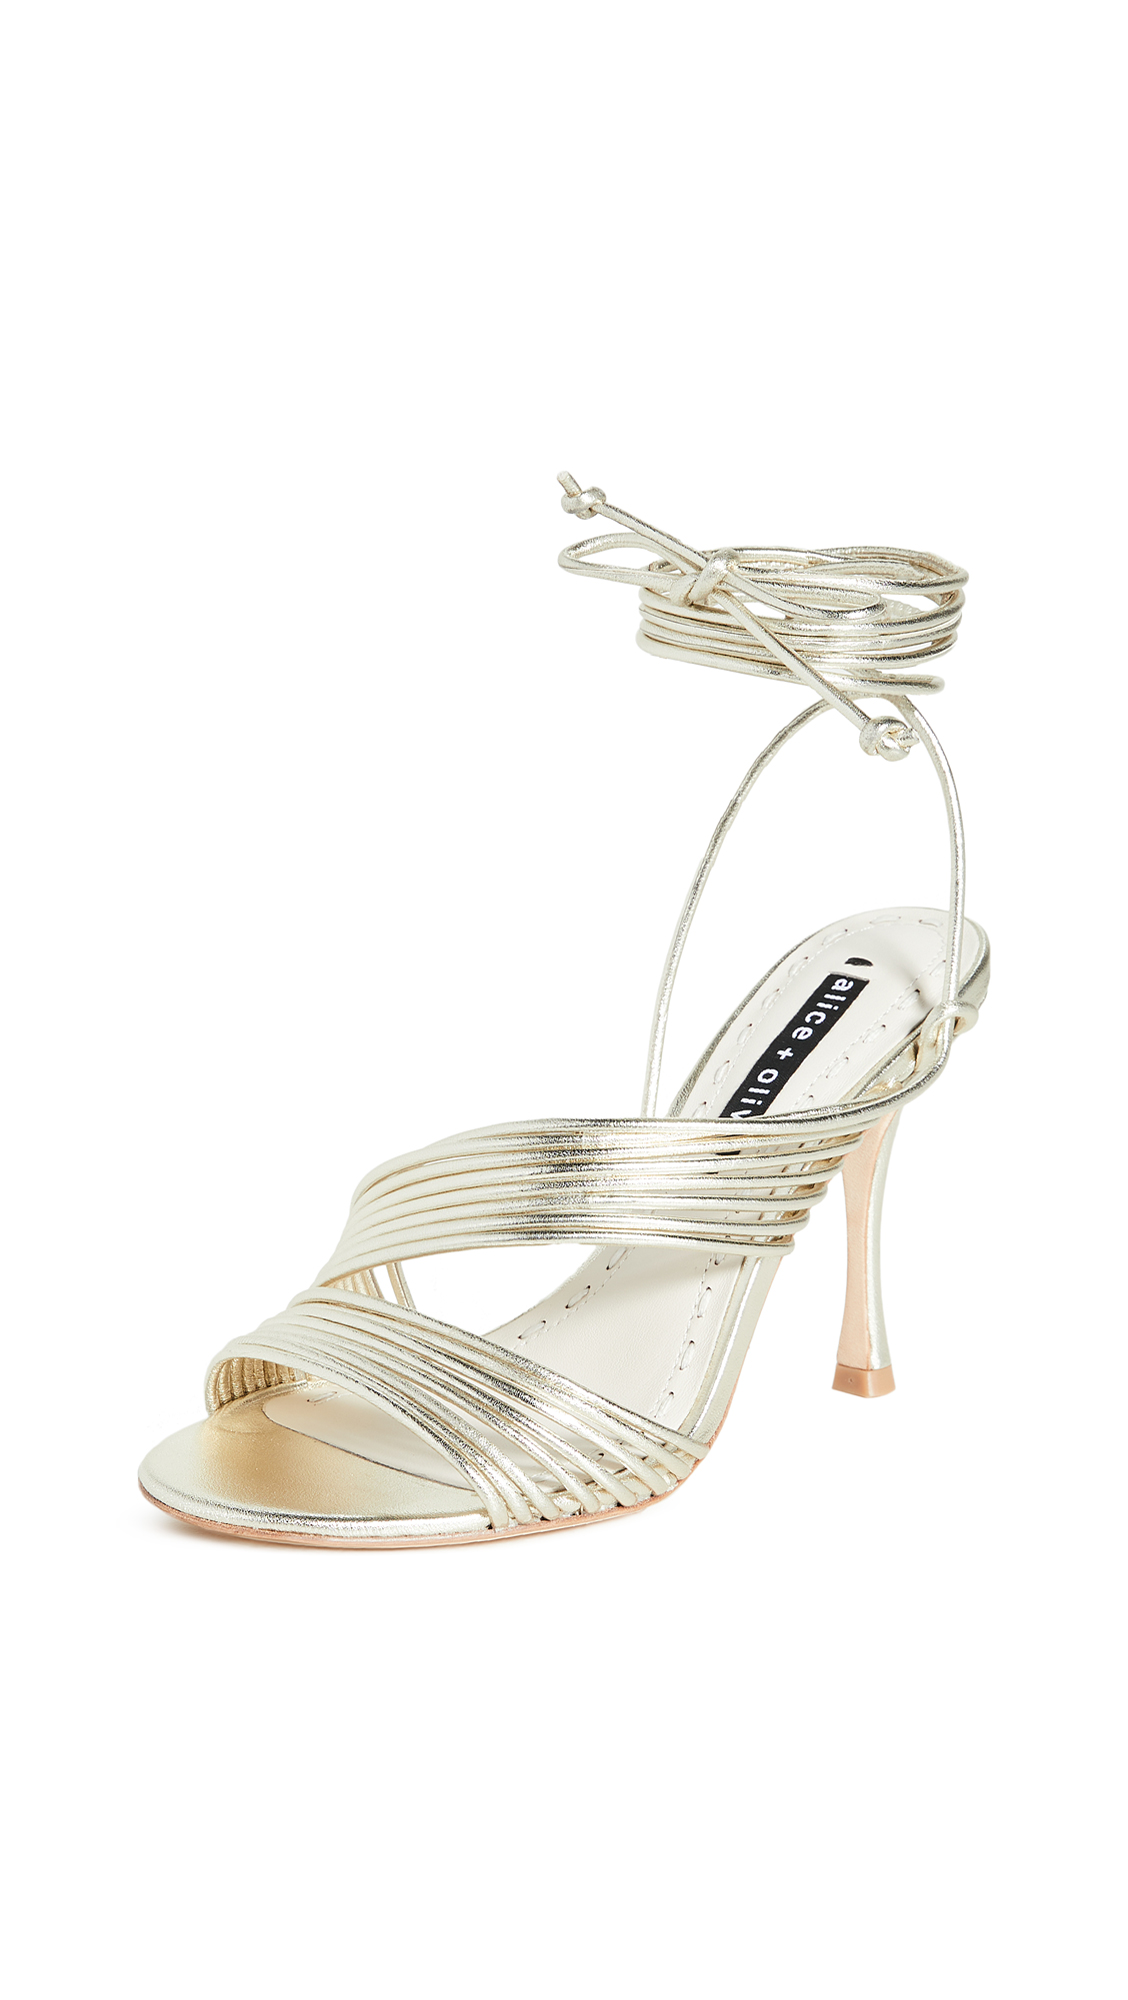 alice + olivia Danessa Sandals